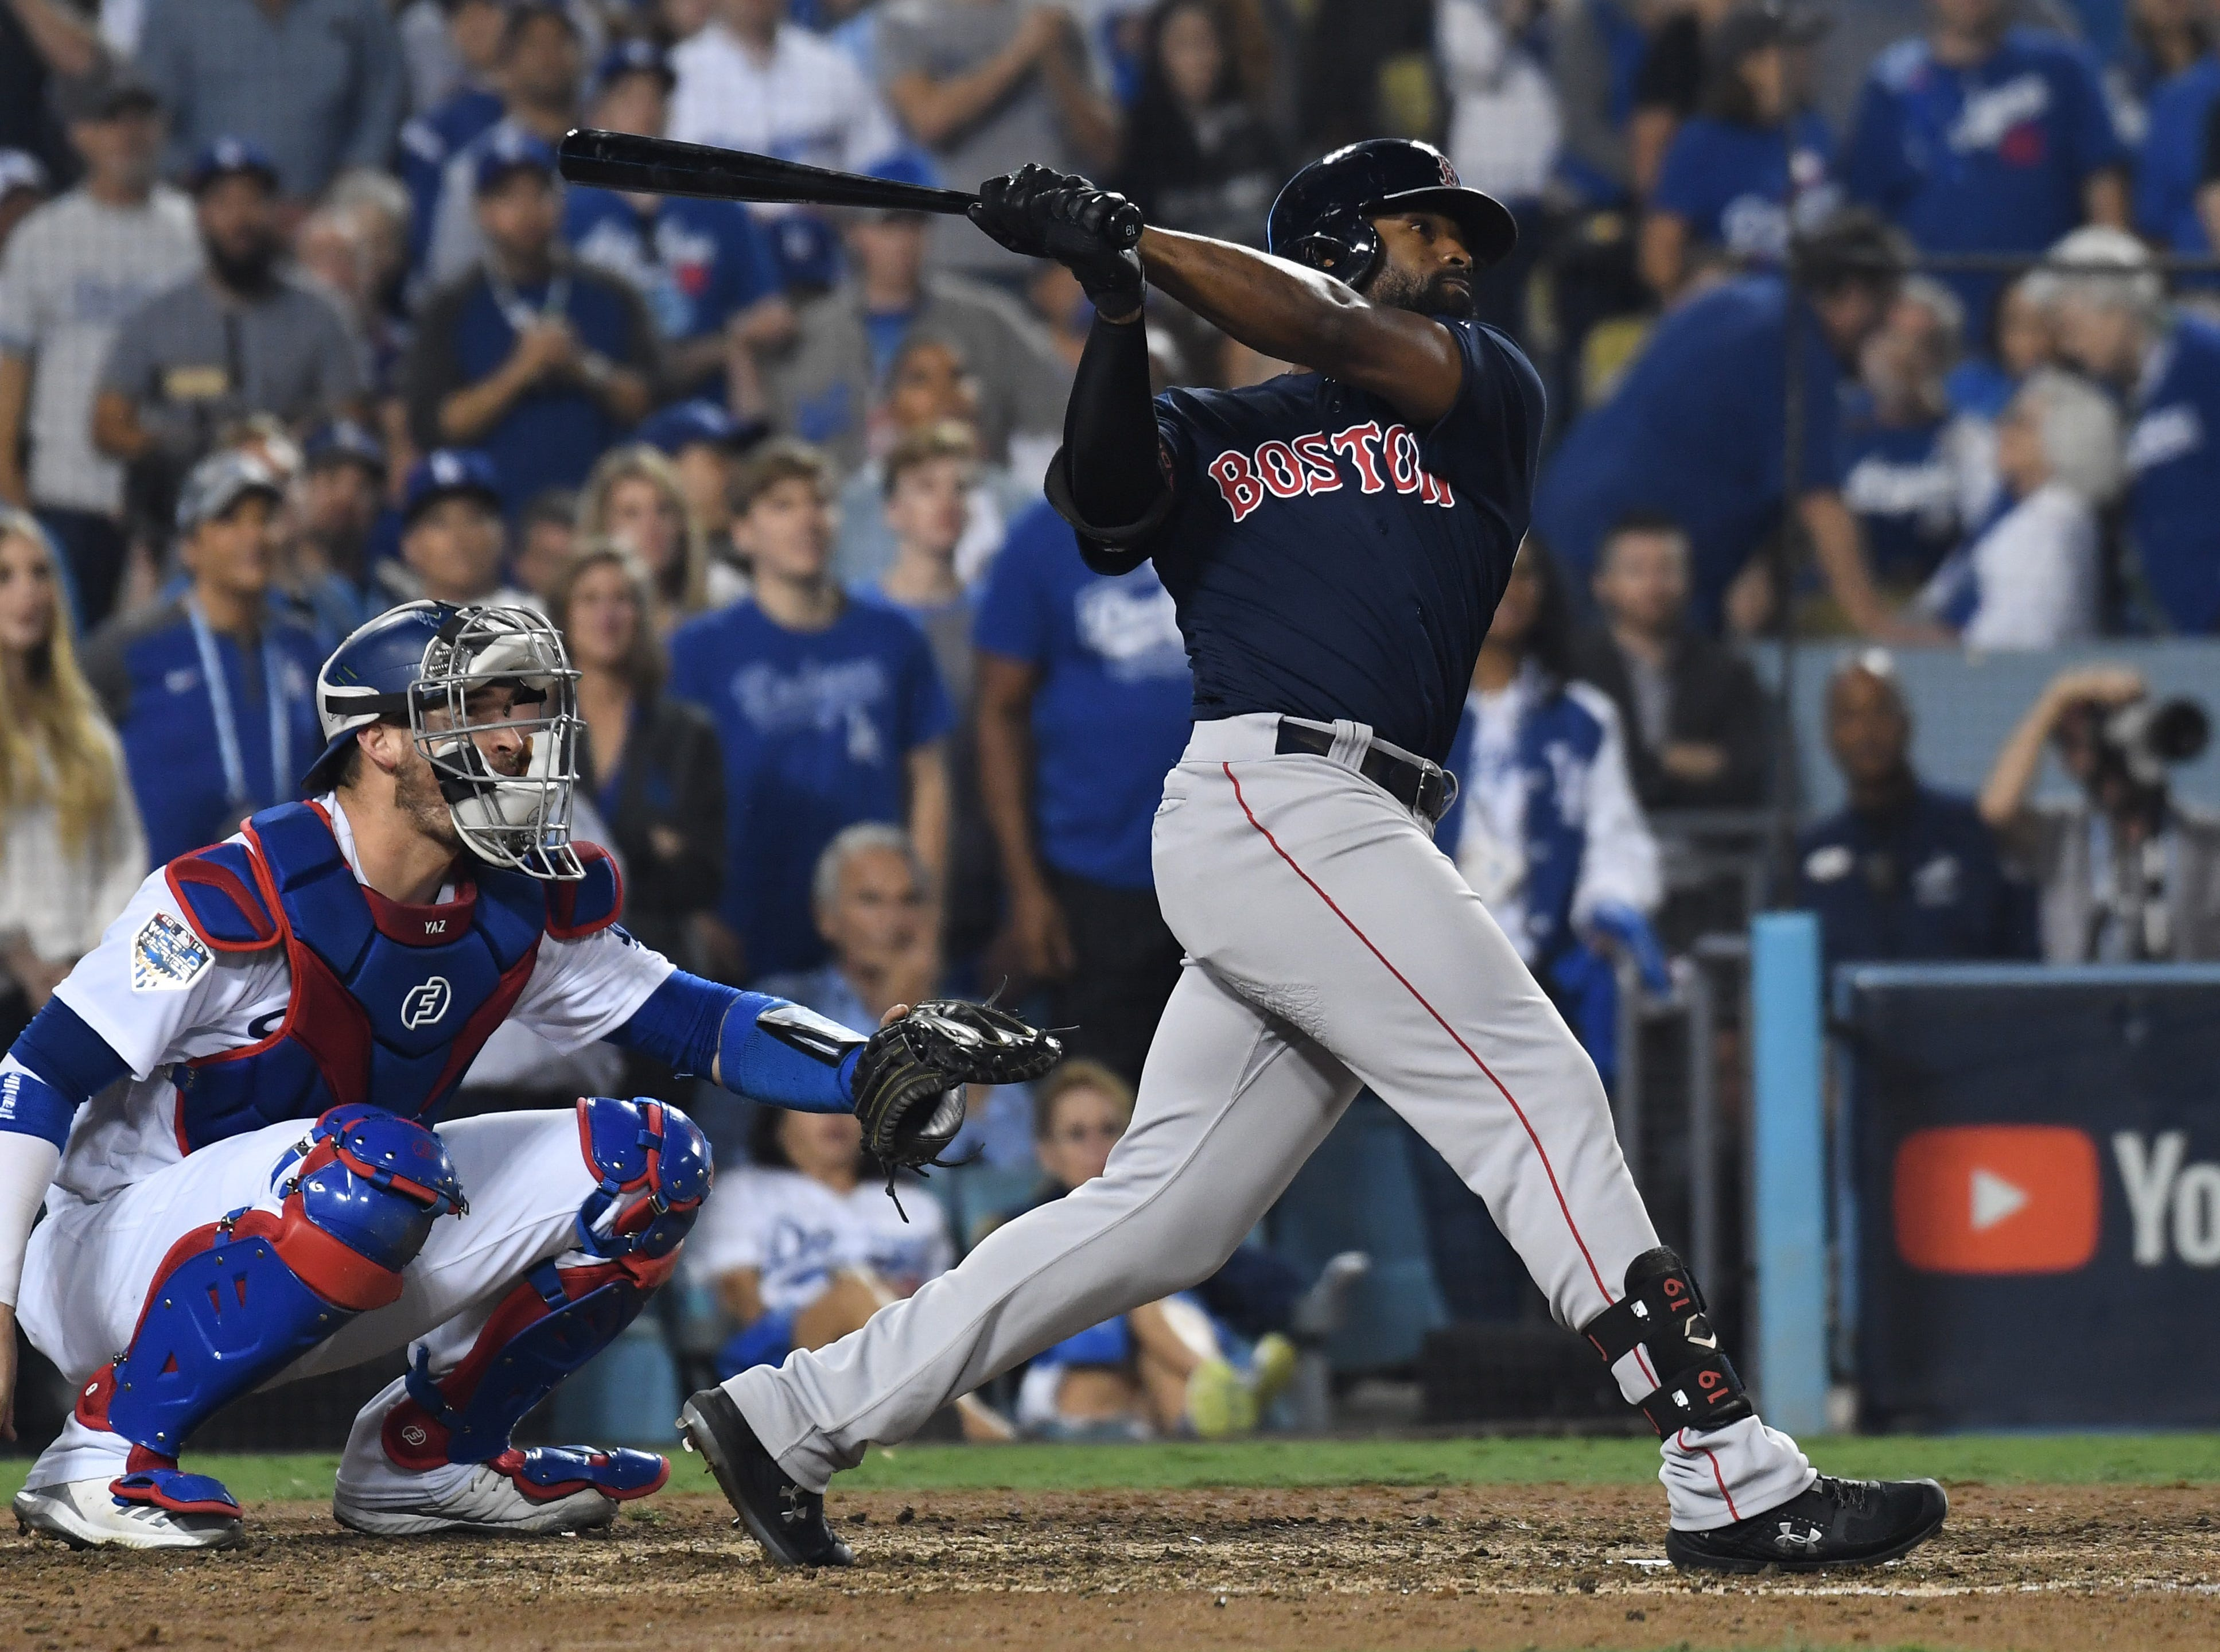 Game 3 at Dodger Stadium: Jackie Bradley Jr. hits a solo home run in the eighth inning.